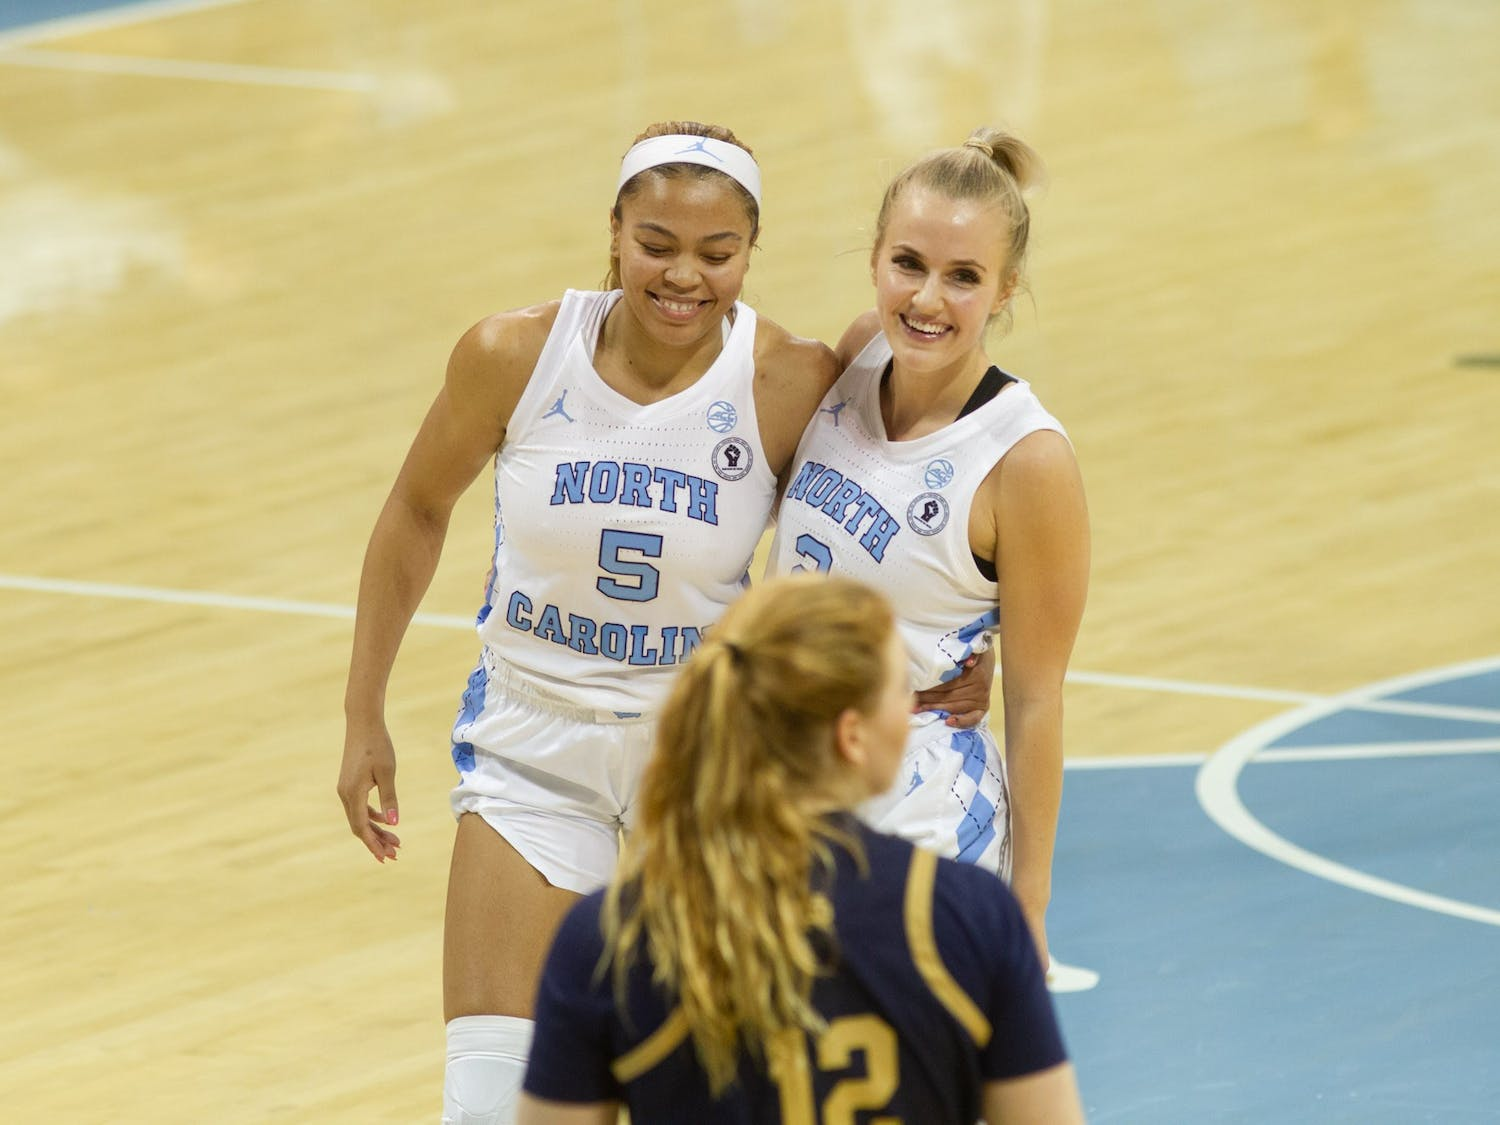 UNC guard Petra Holesinska (2) and guard Stephanie Watts (5) enjoying their win in Carmichael Arena on Jan. 24, 2021 after a game against Notre Dame. UNC defeated Notre Dame 78-73.